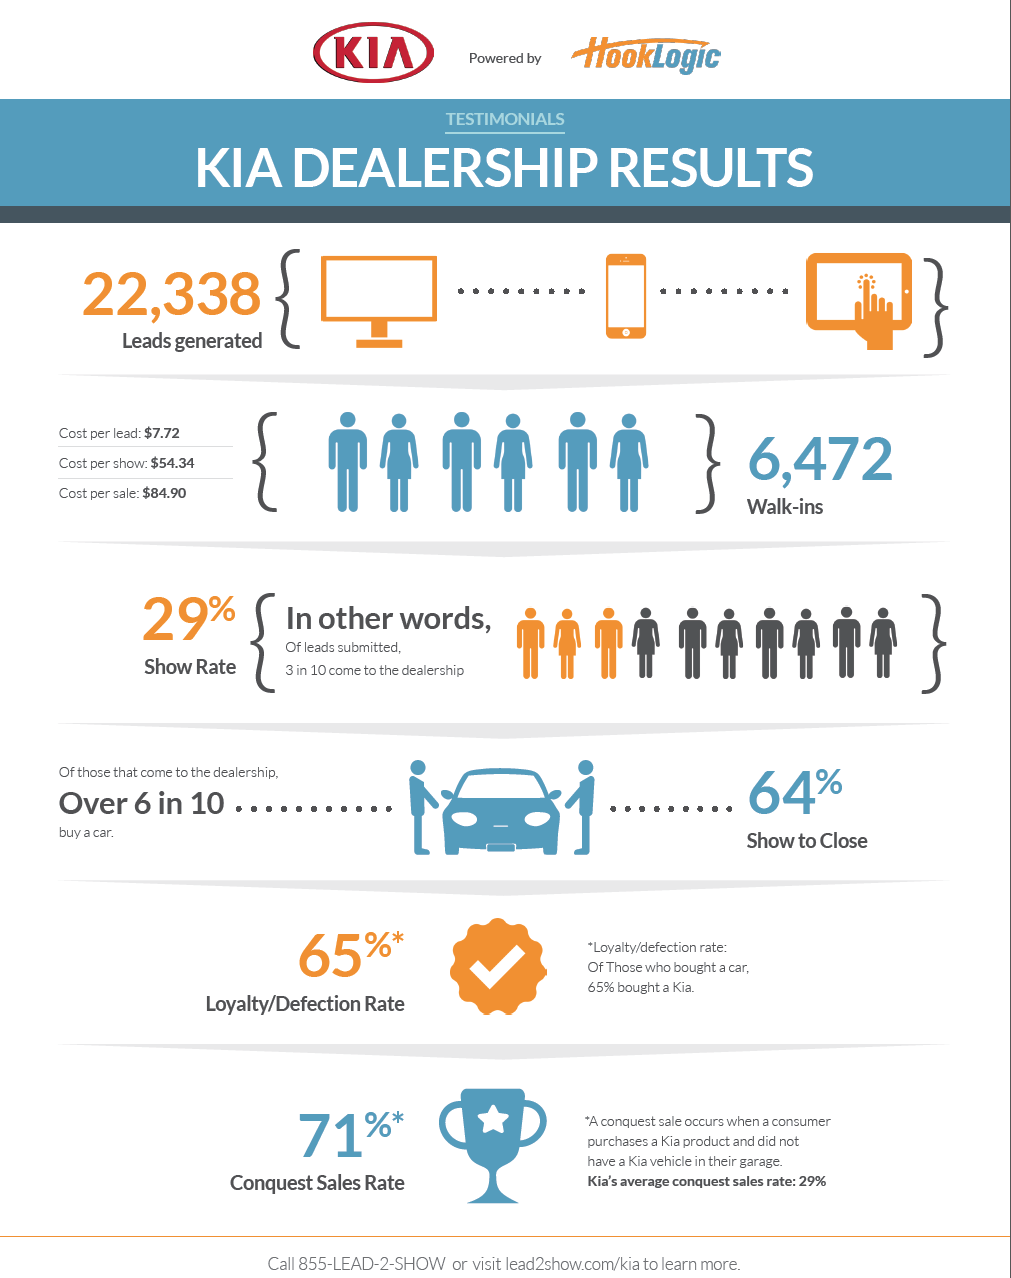 Hooklogic Performance for Kia dealers in 2014